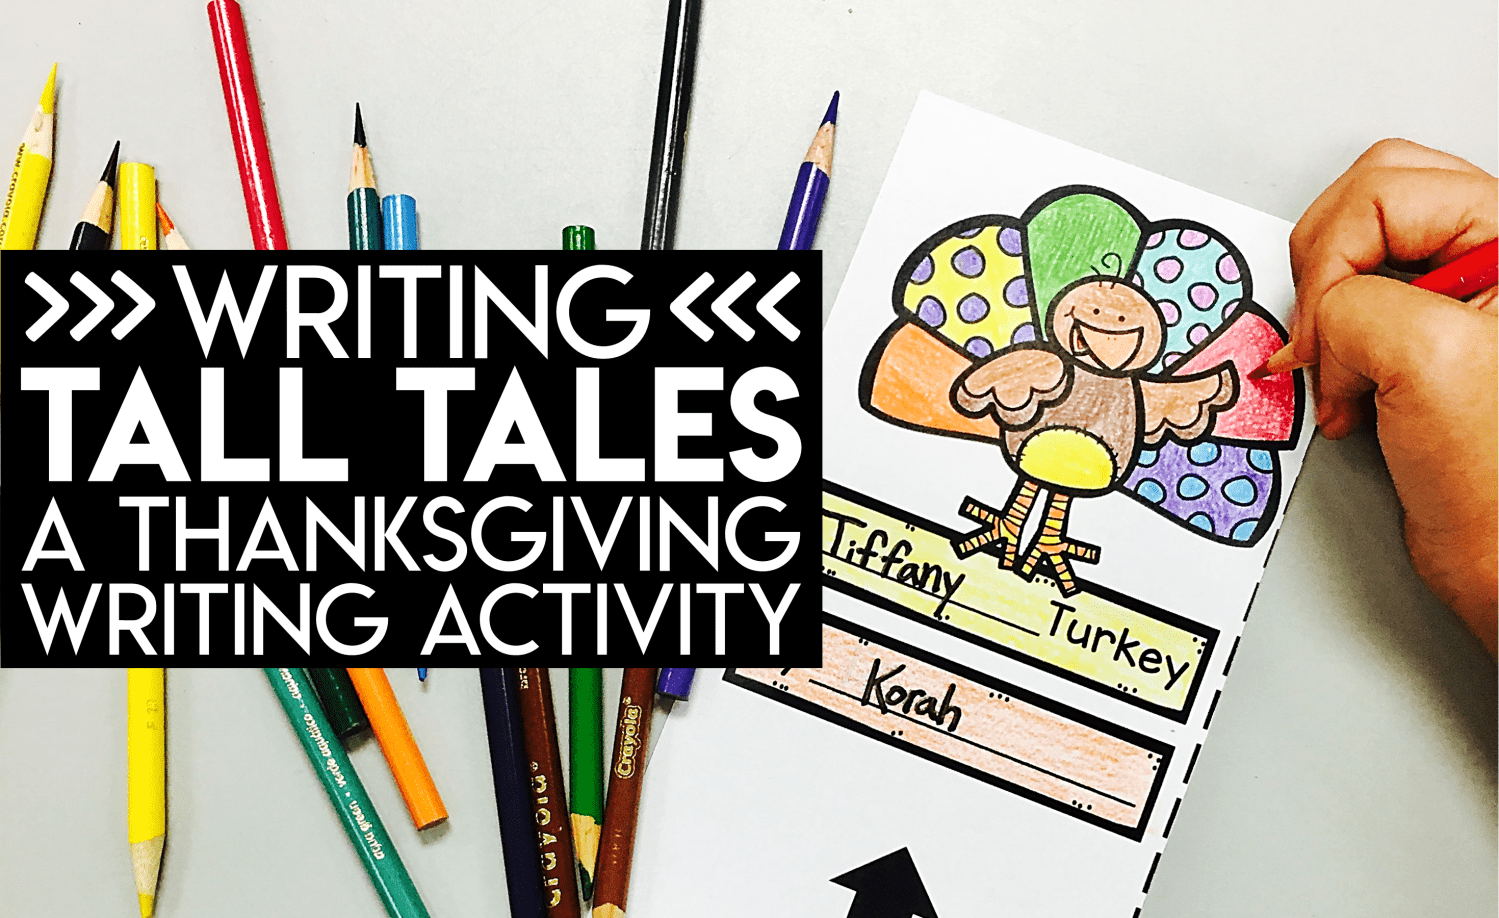 Writing Tall Tales: A Thanksgiving Writing Activity